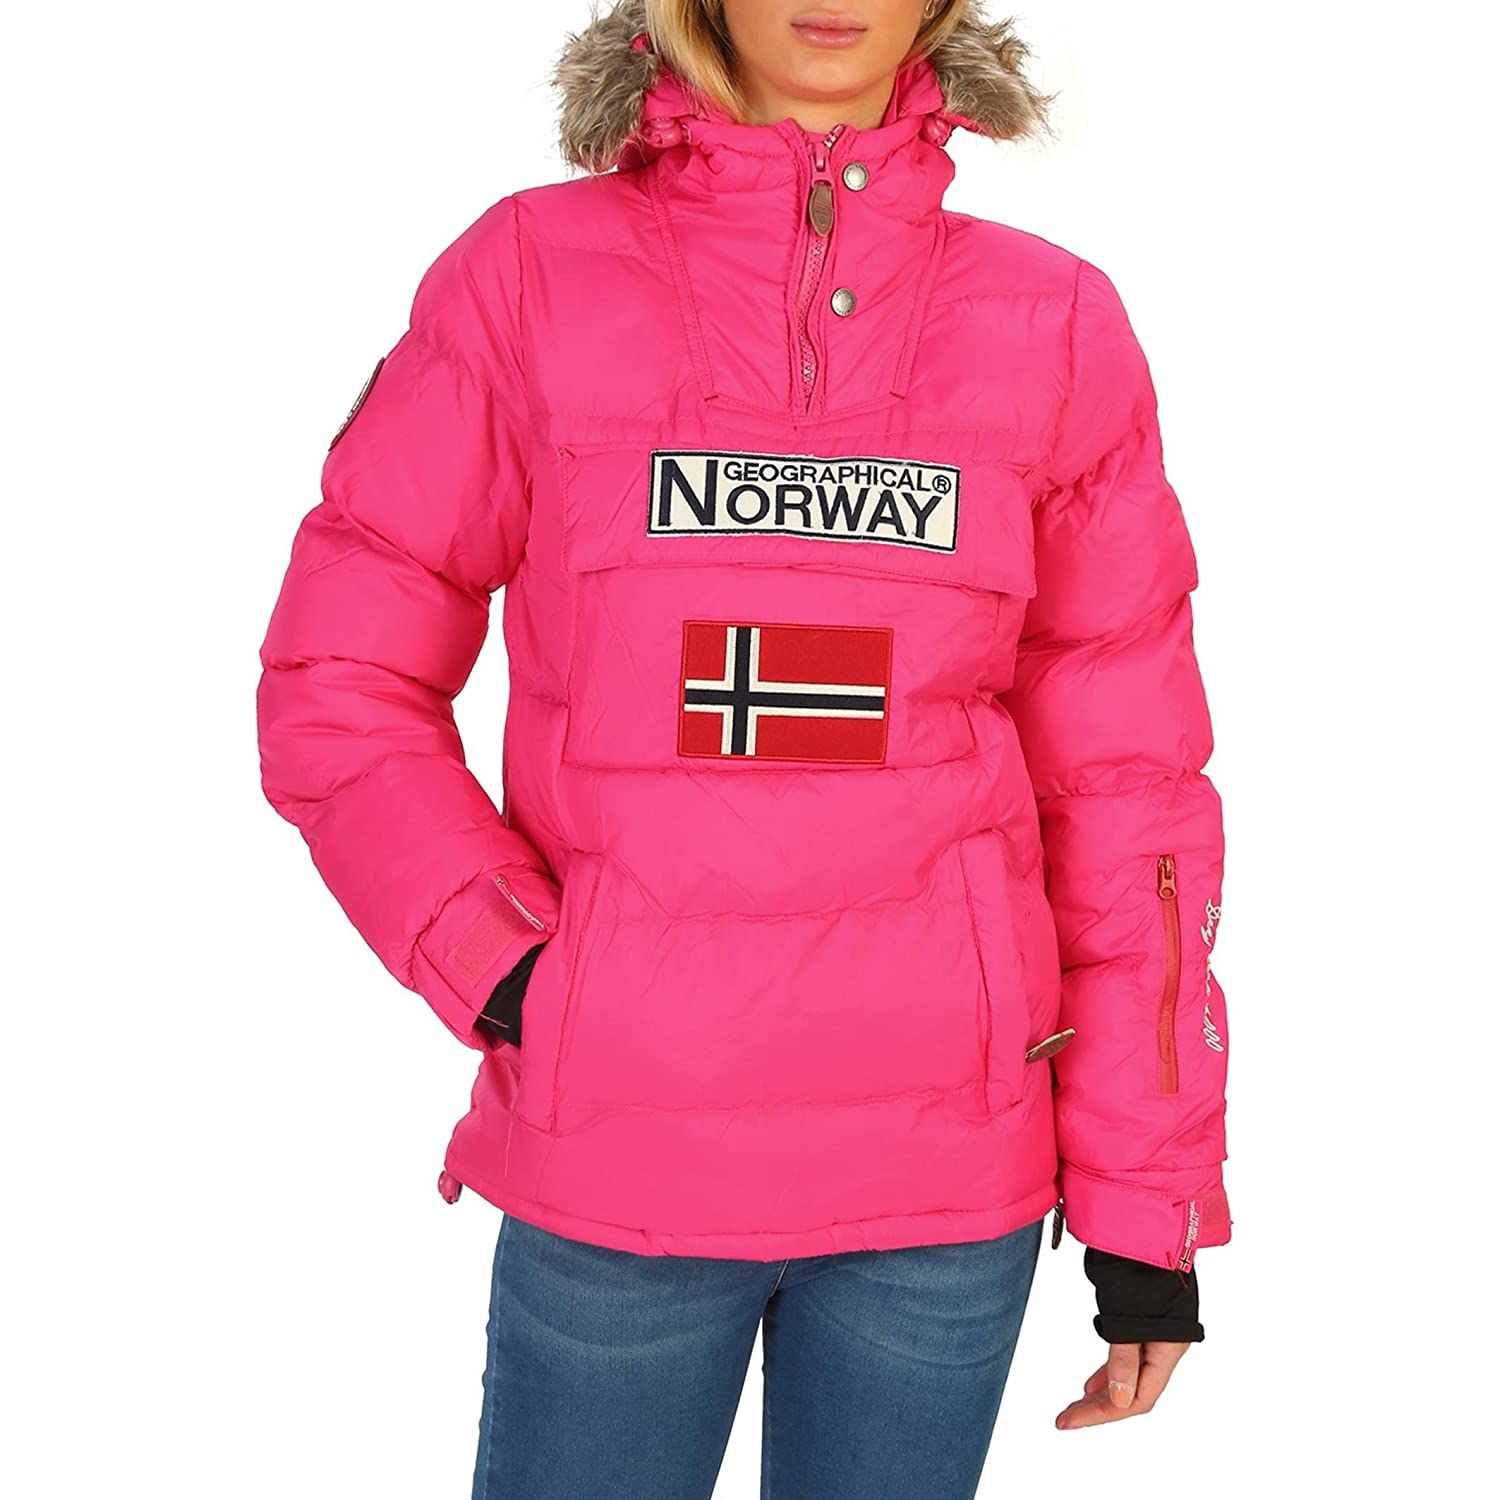 Geographical Norway Anson_woman Chaquetas Mujer Rosa 3 ...